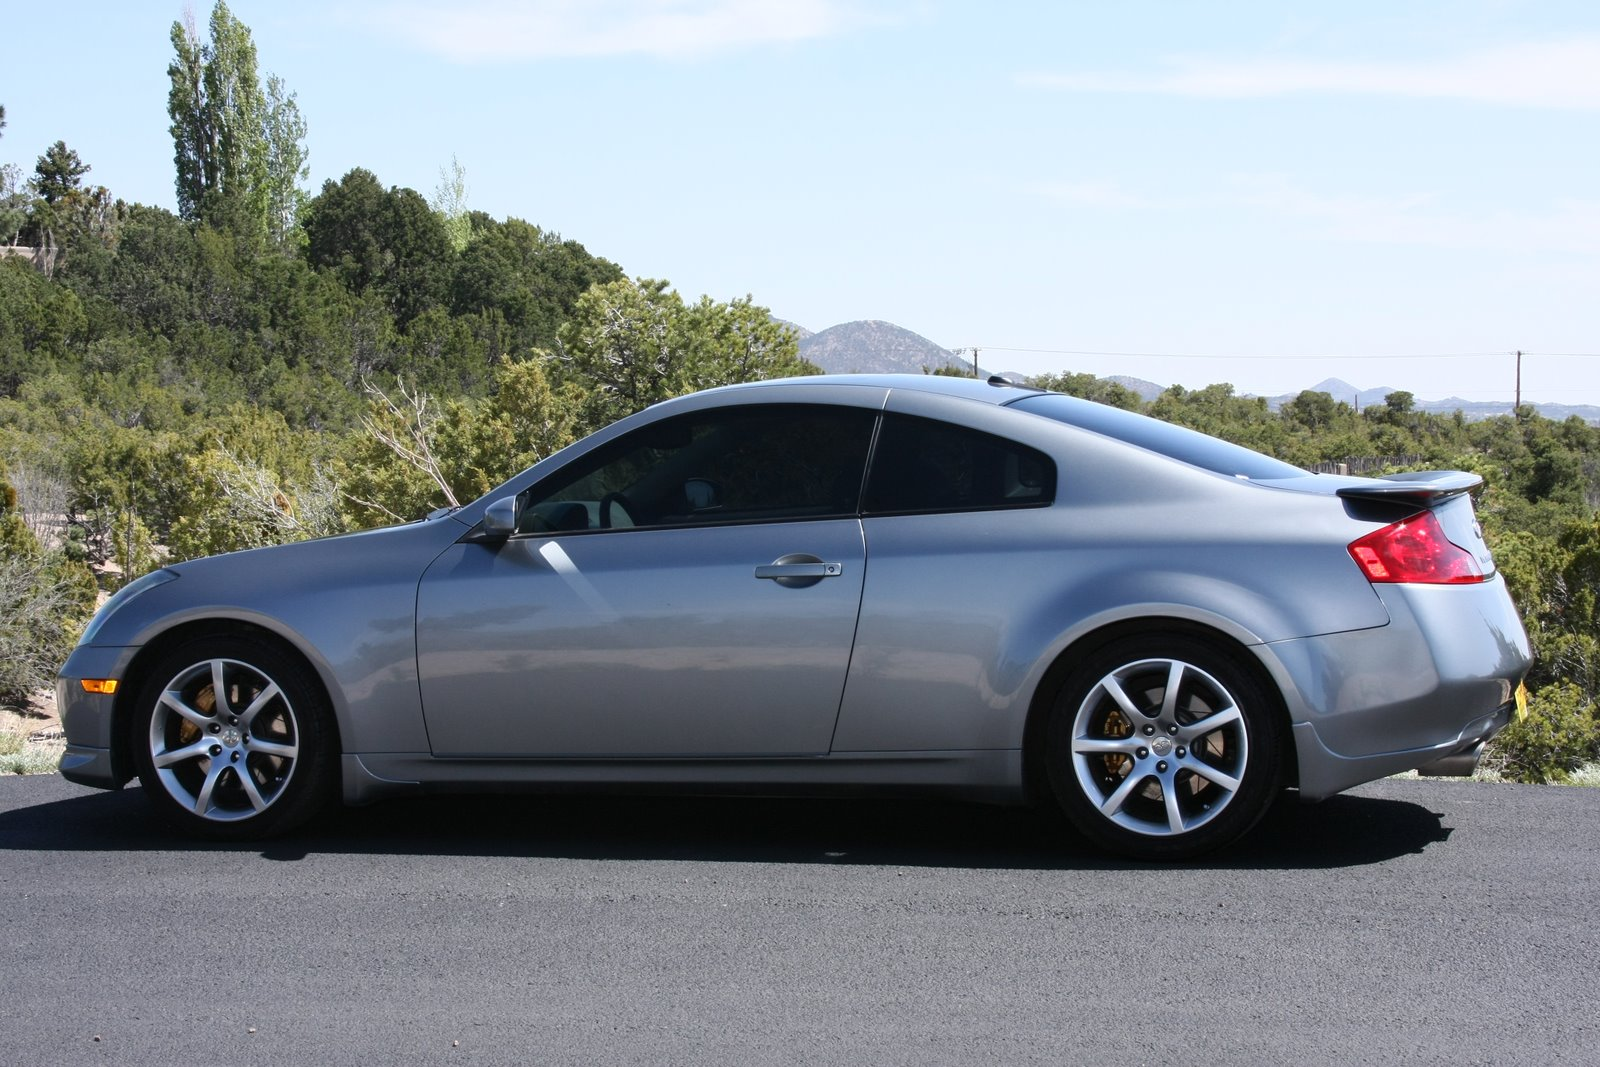 2004 infiniti g35 sport coupe 6 speed brembos. Black Bedroom Furniture Sets. Home Design Ideas